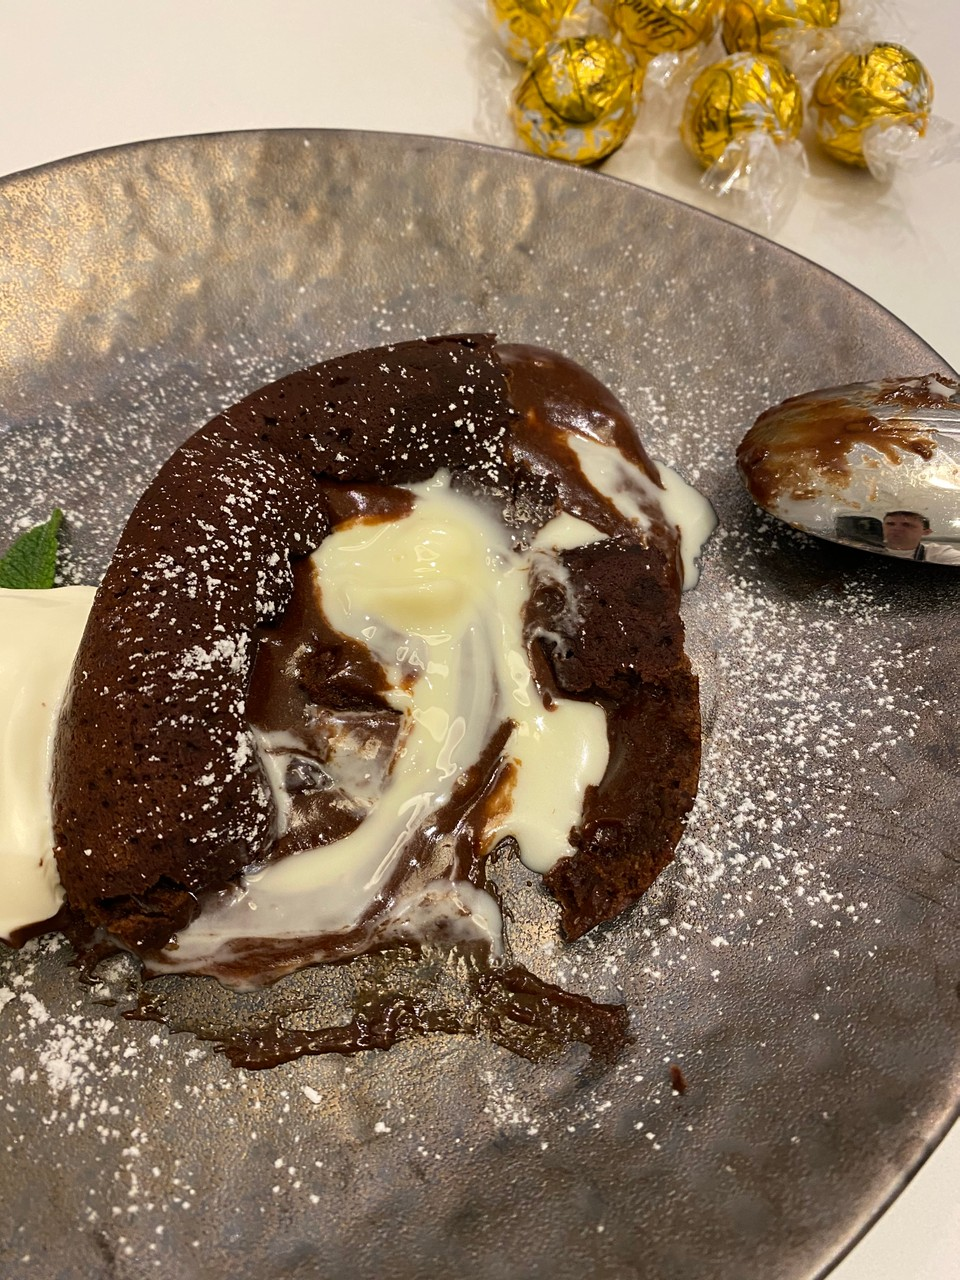 Chocolate Fondant with a White Choc Centre